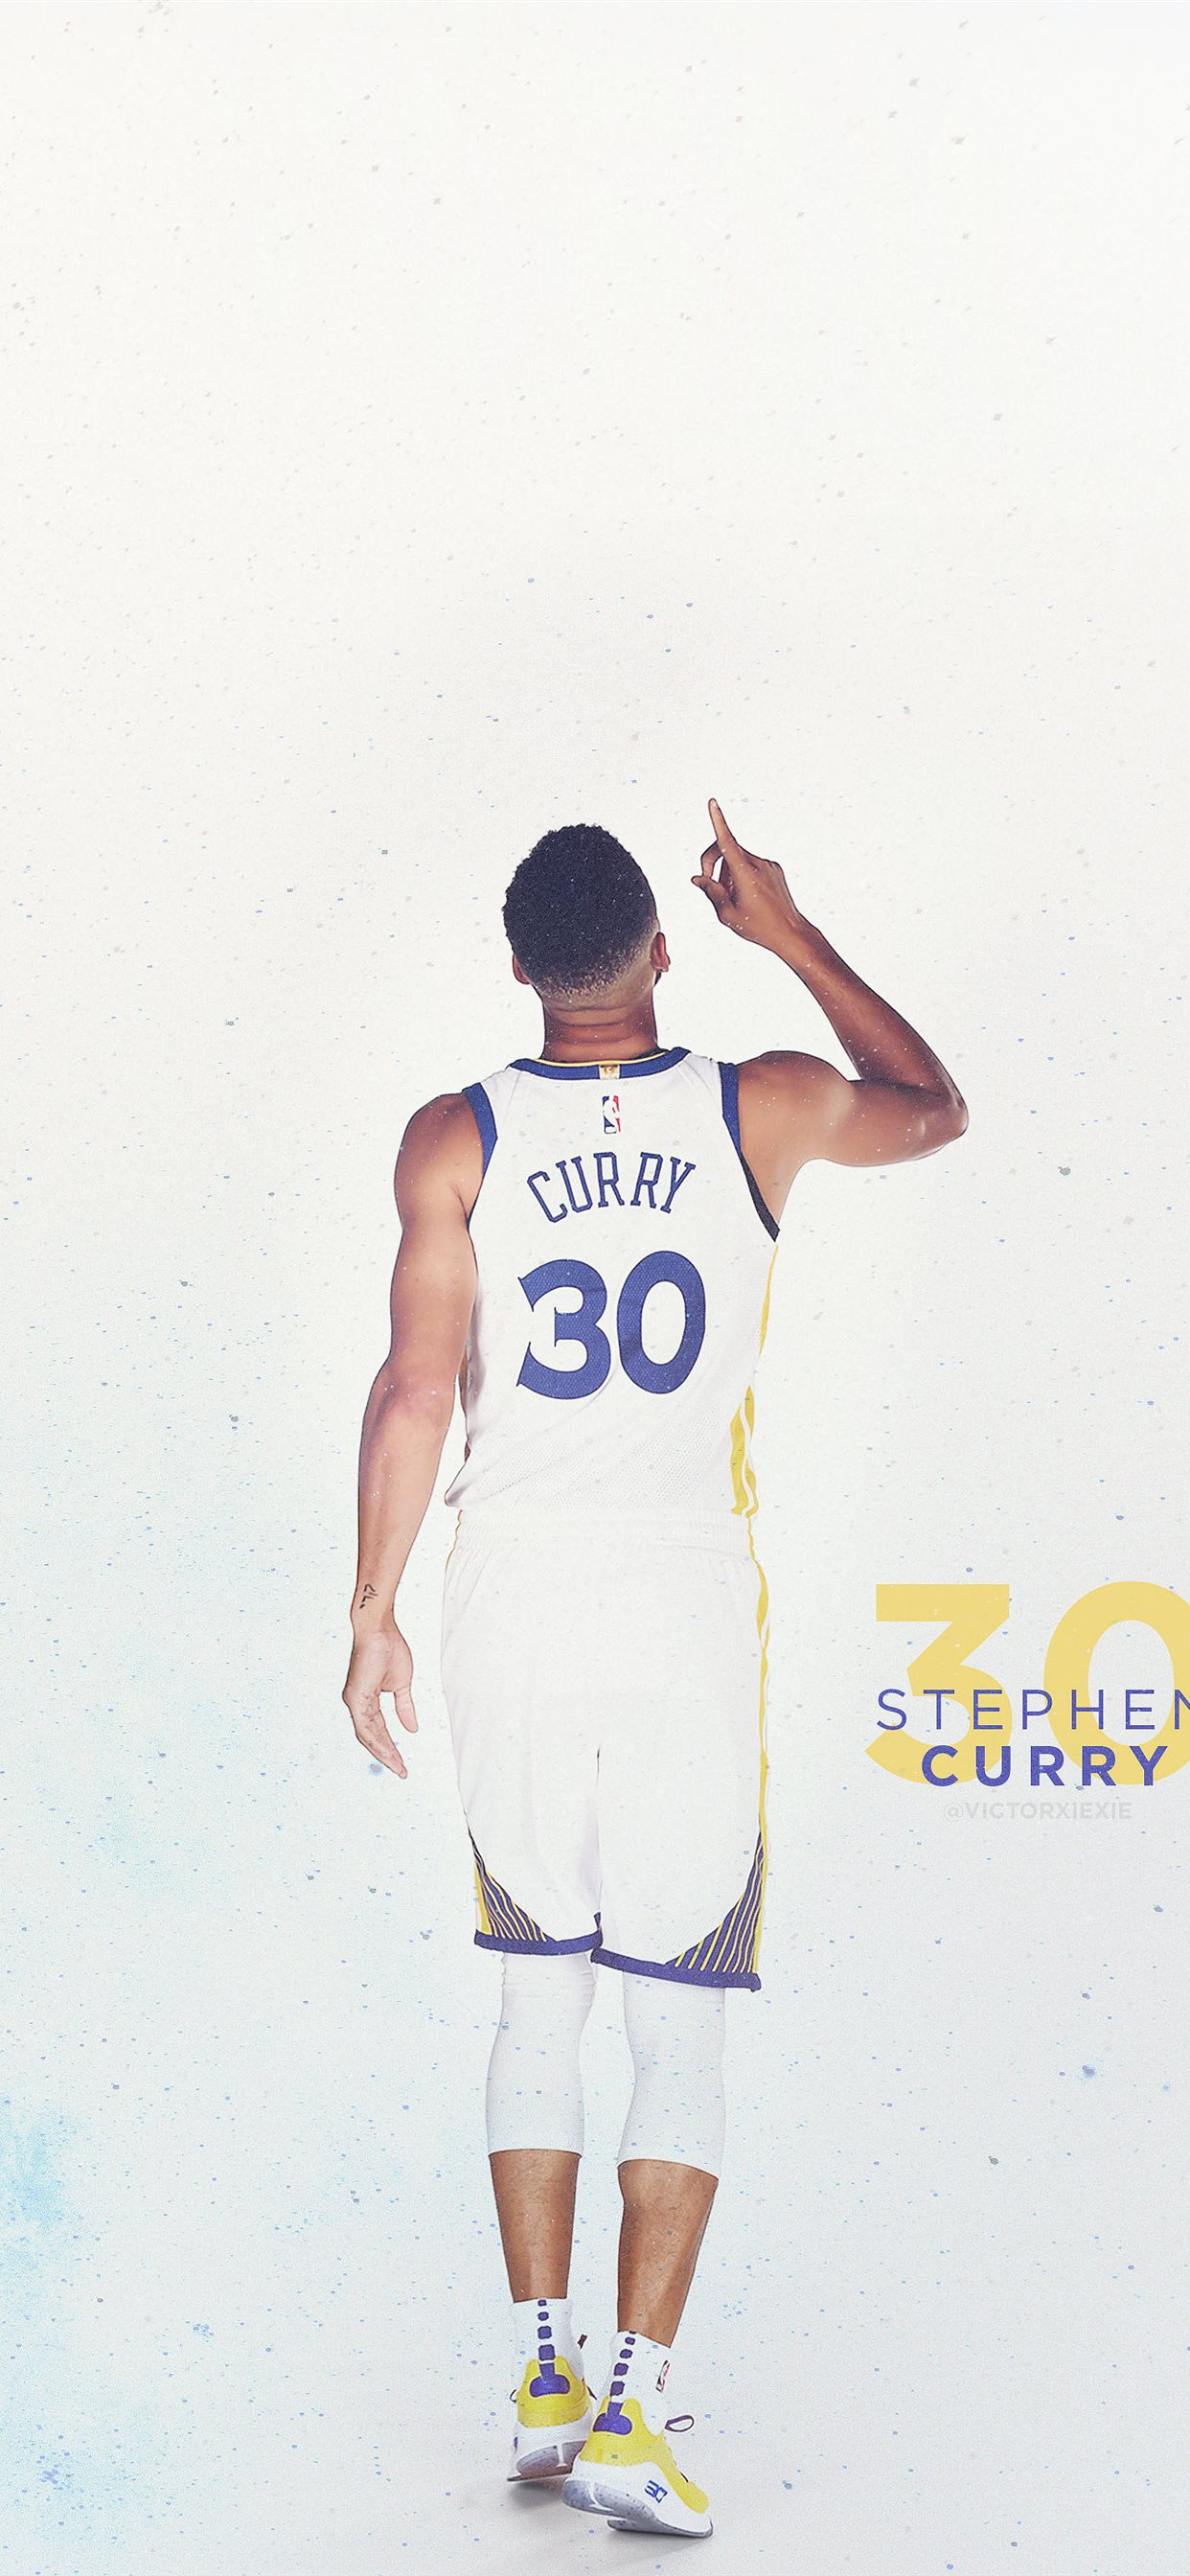 Stephen Curry Steph Curry Nba Stephen Iphone 11 Wallpapers Free Download